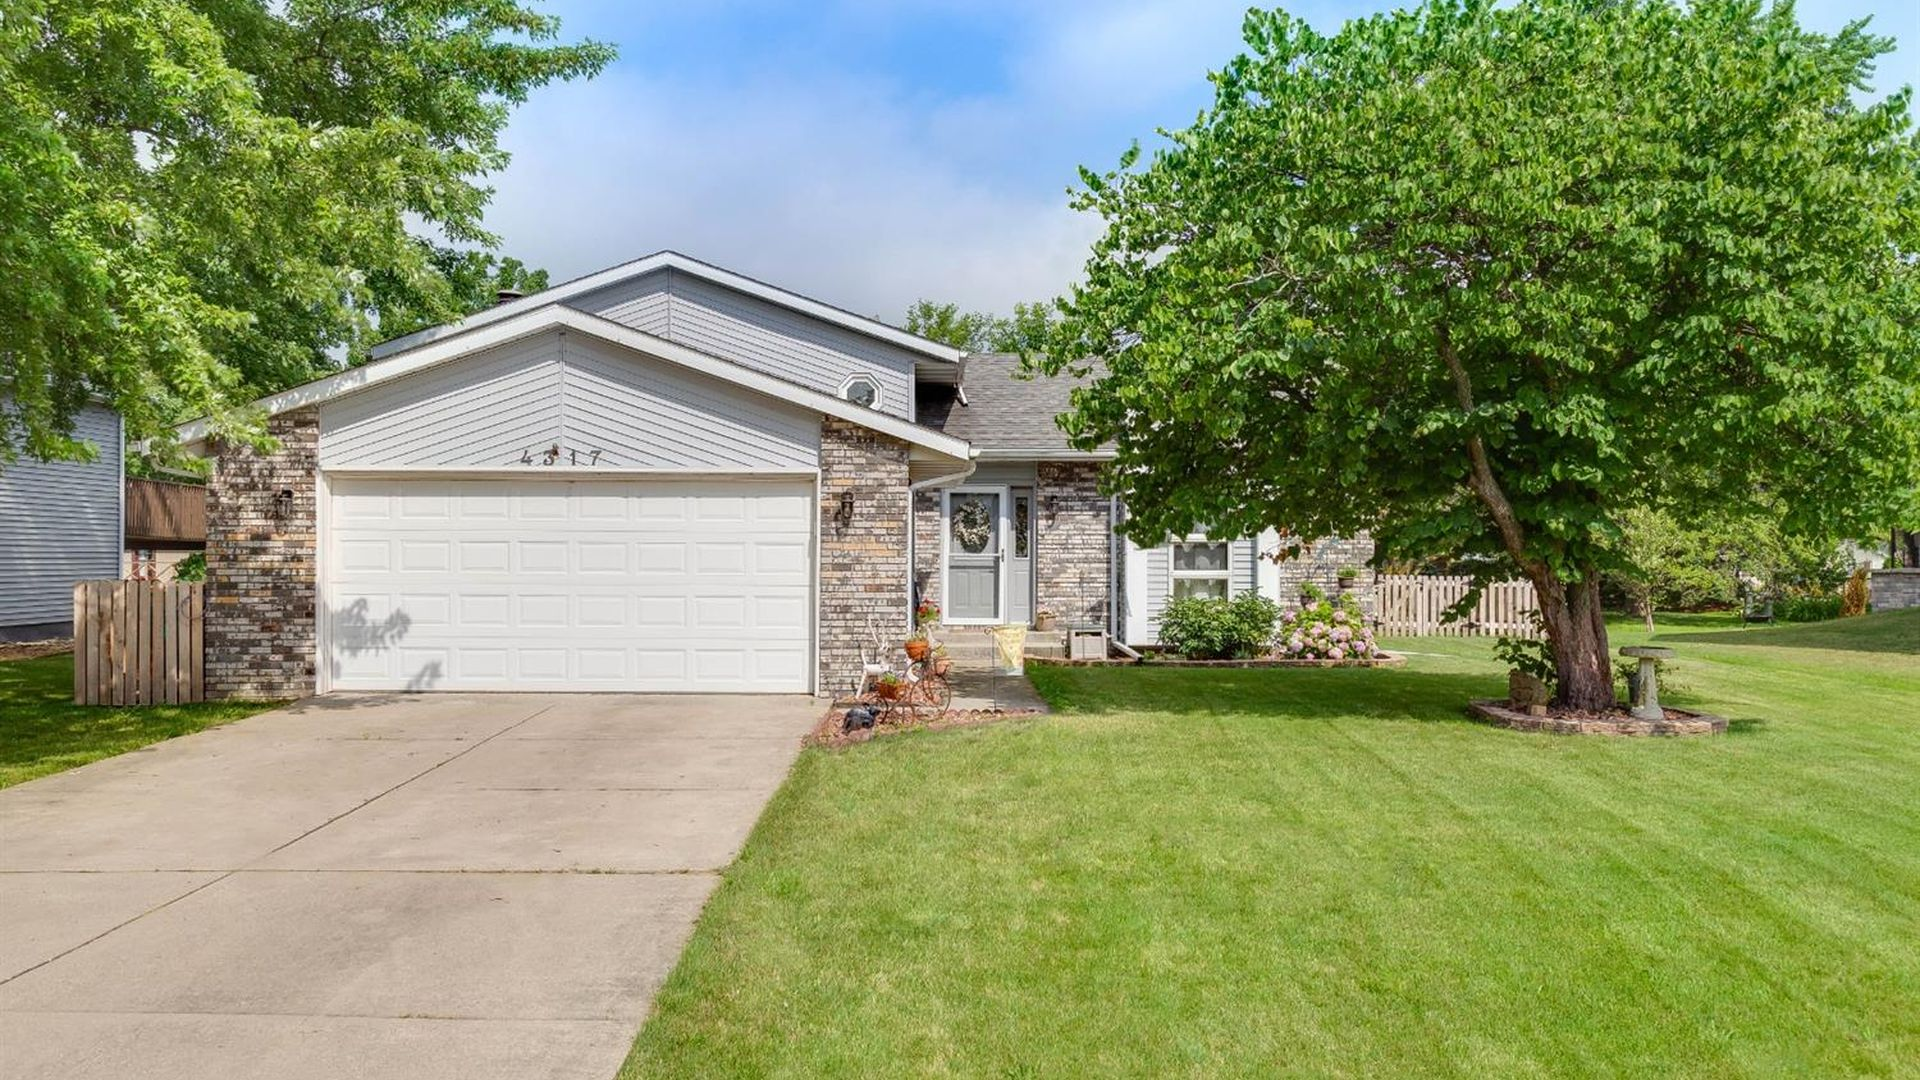 Recently Sold Homes In Lakes Of The Four Seasons Crown Point 315 Transactions Zillow